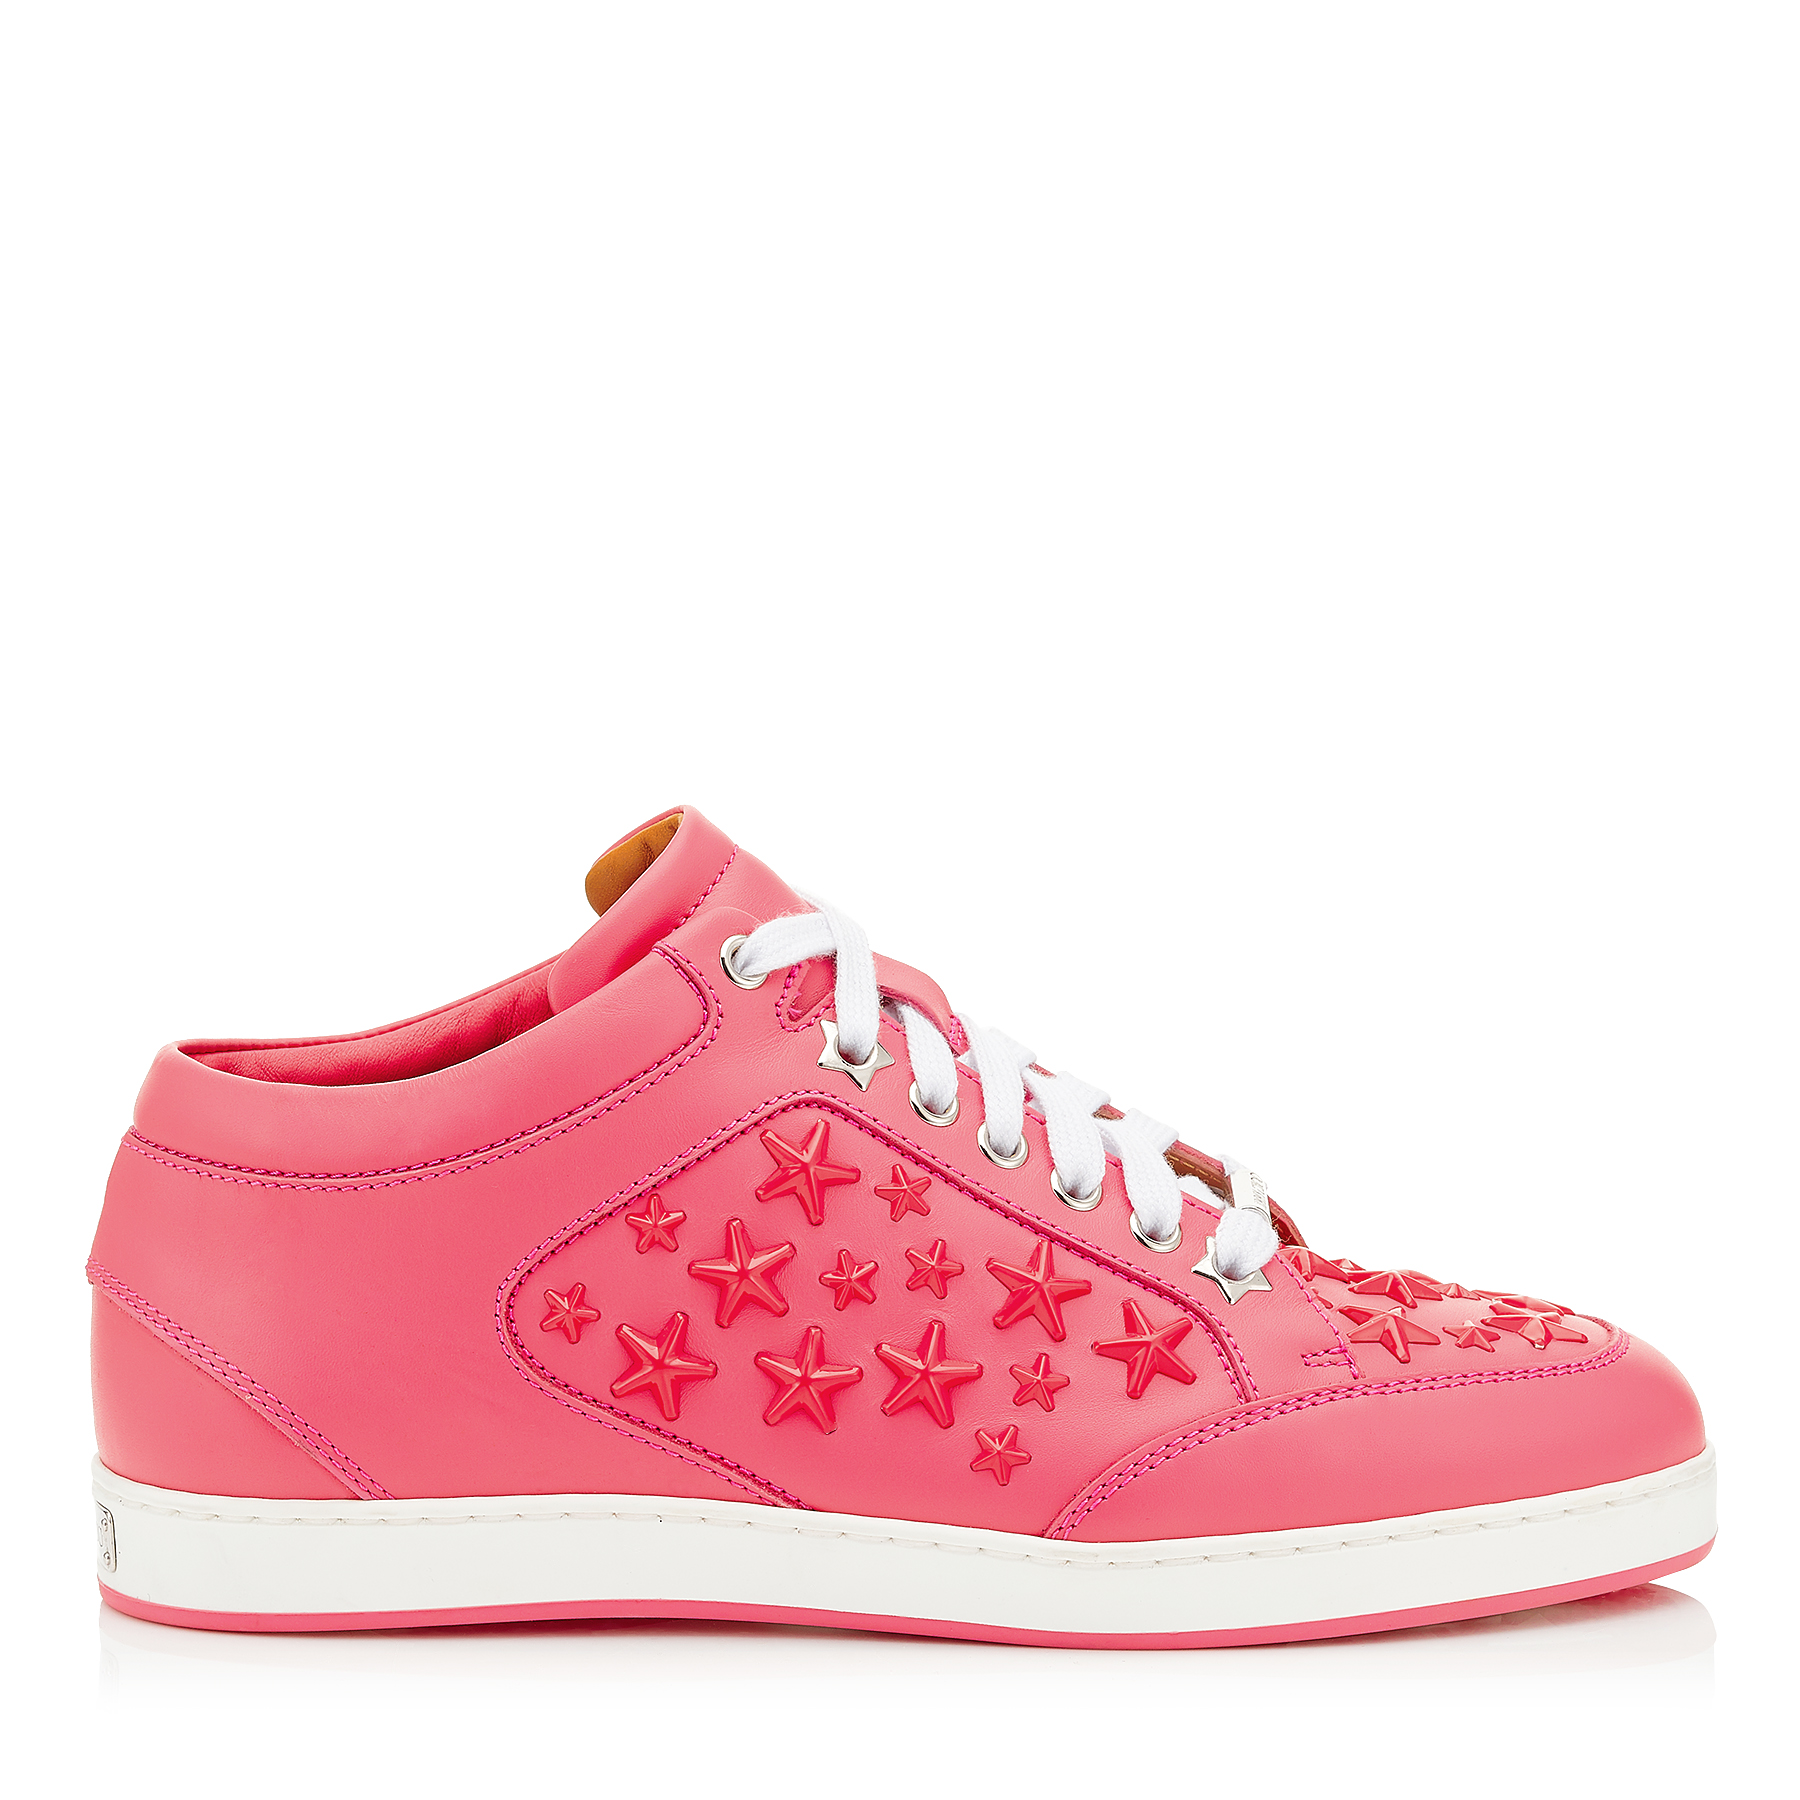 MIAMI Flamingo leather Sneakers with Enamel Stars by Jimmy Choo